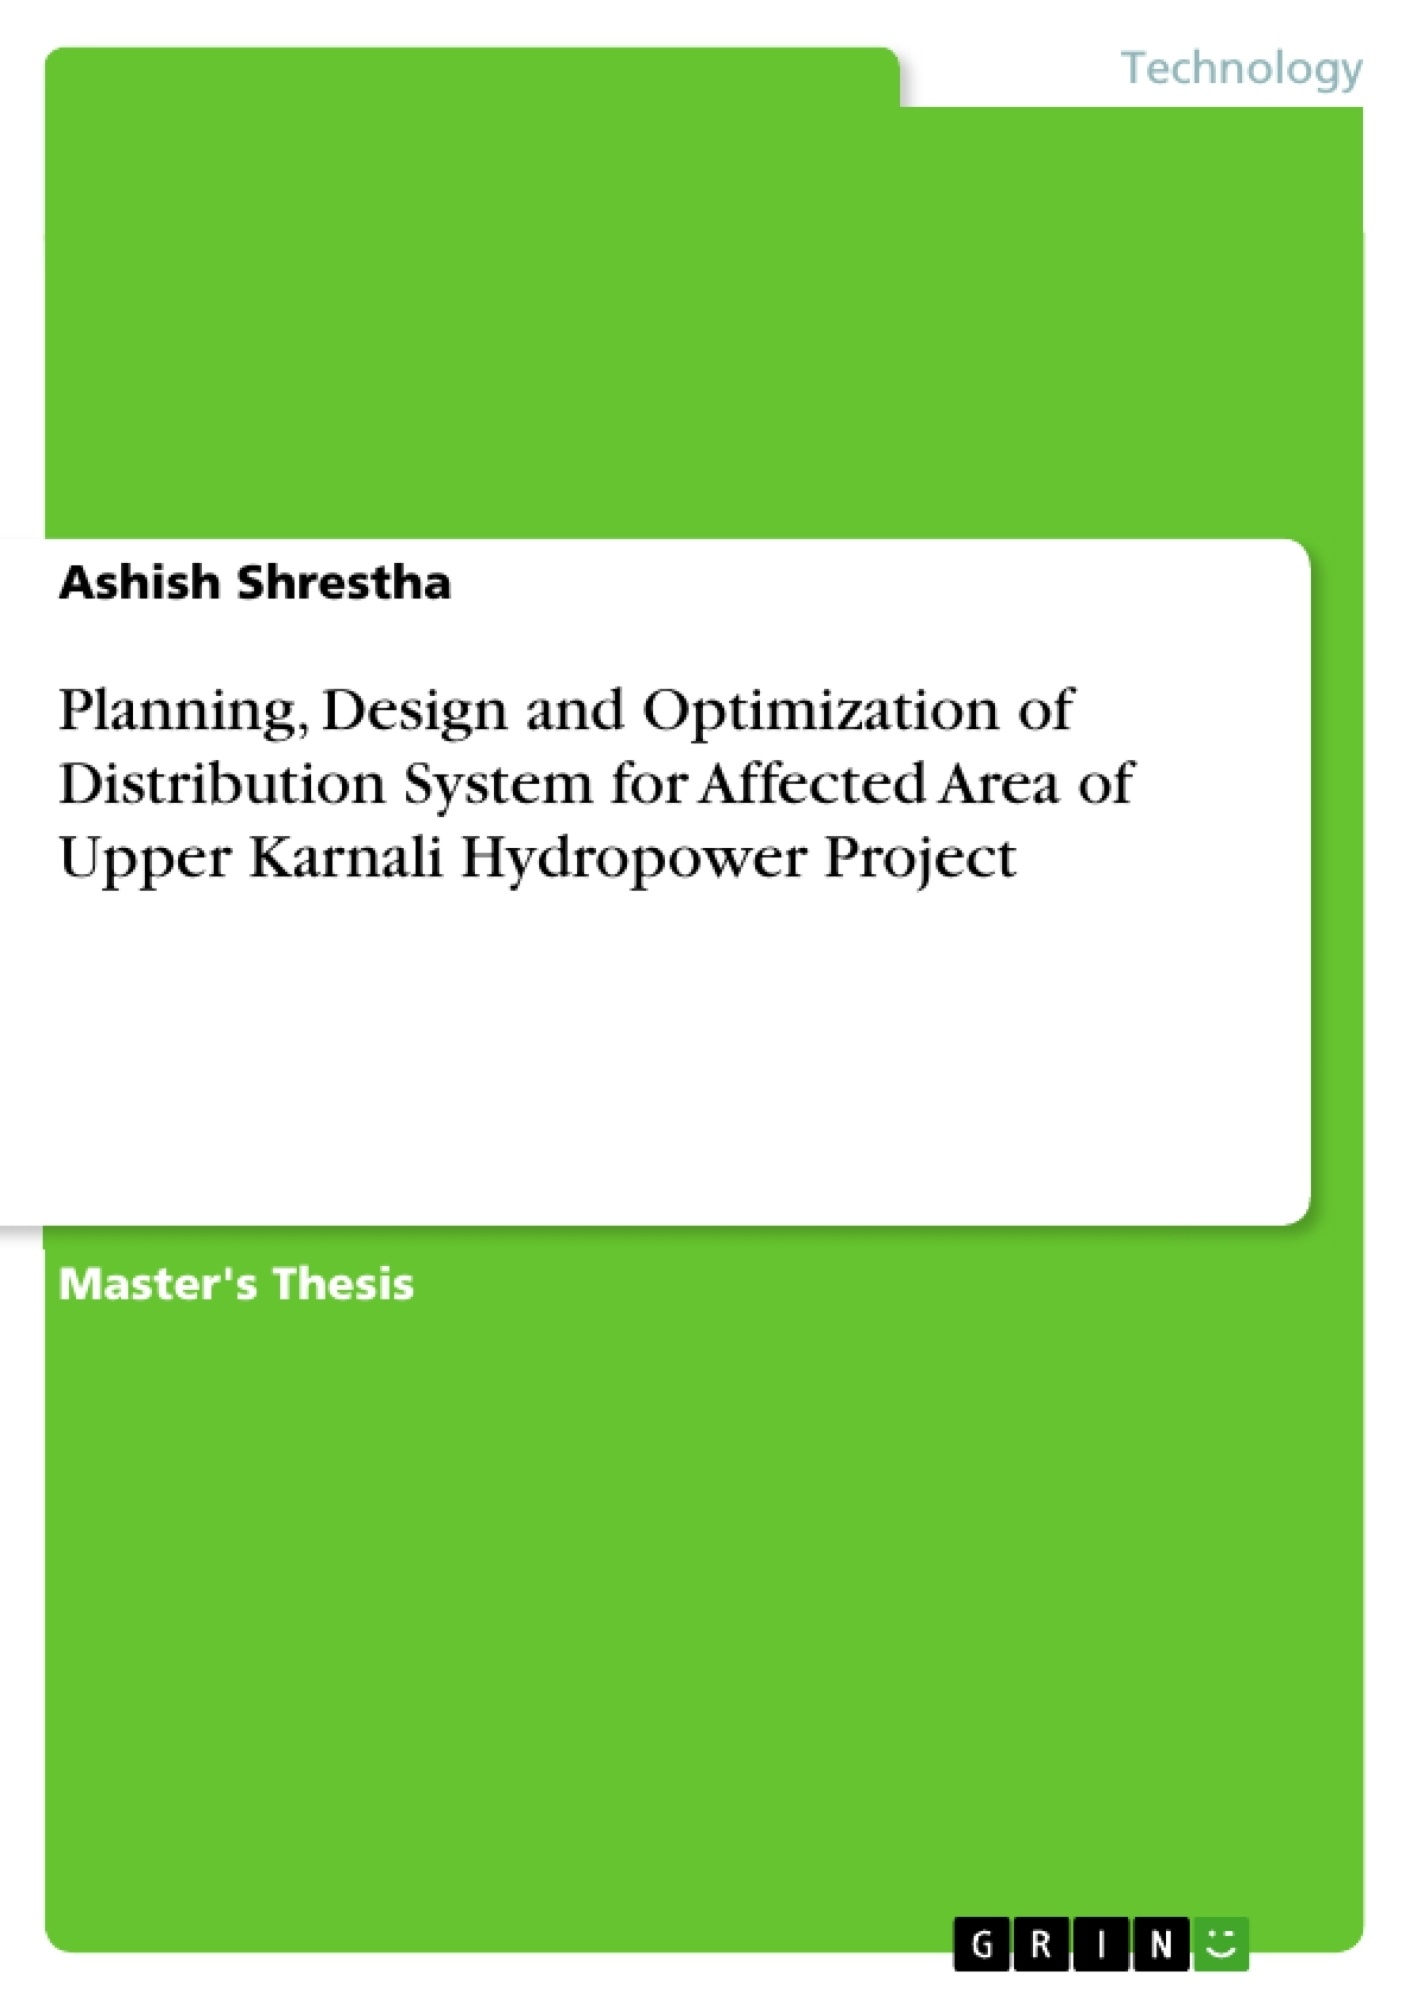 GRIN - Planning, Design and Optimization of Distribution System for  Affected Area of Upper Karnali Hydropower Project